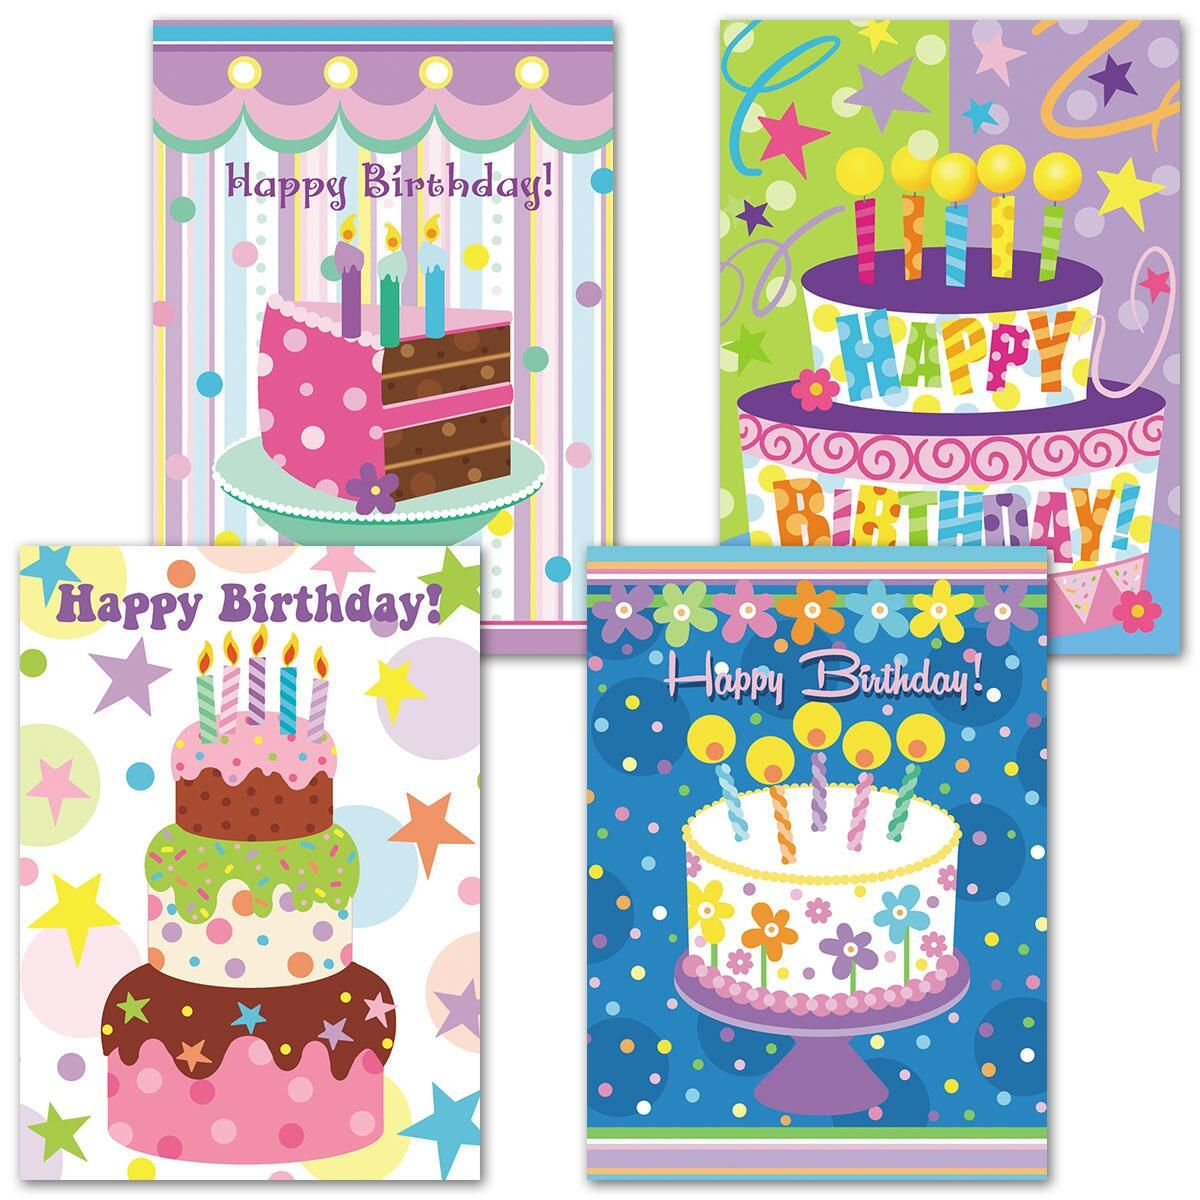 Cake Celebration Birthday Cards